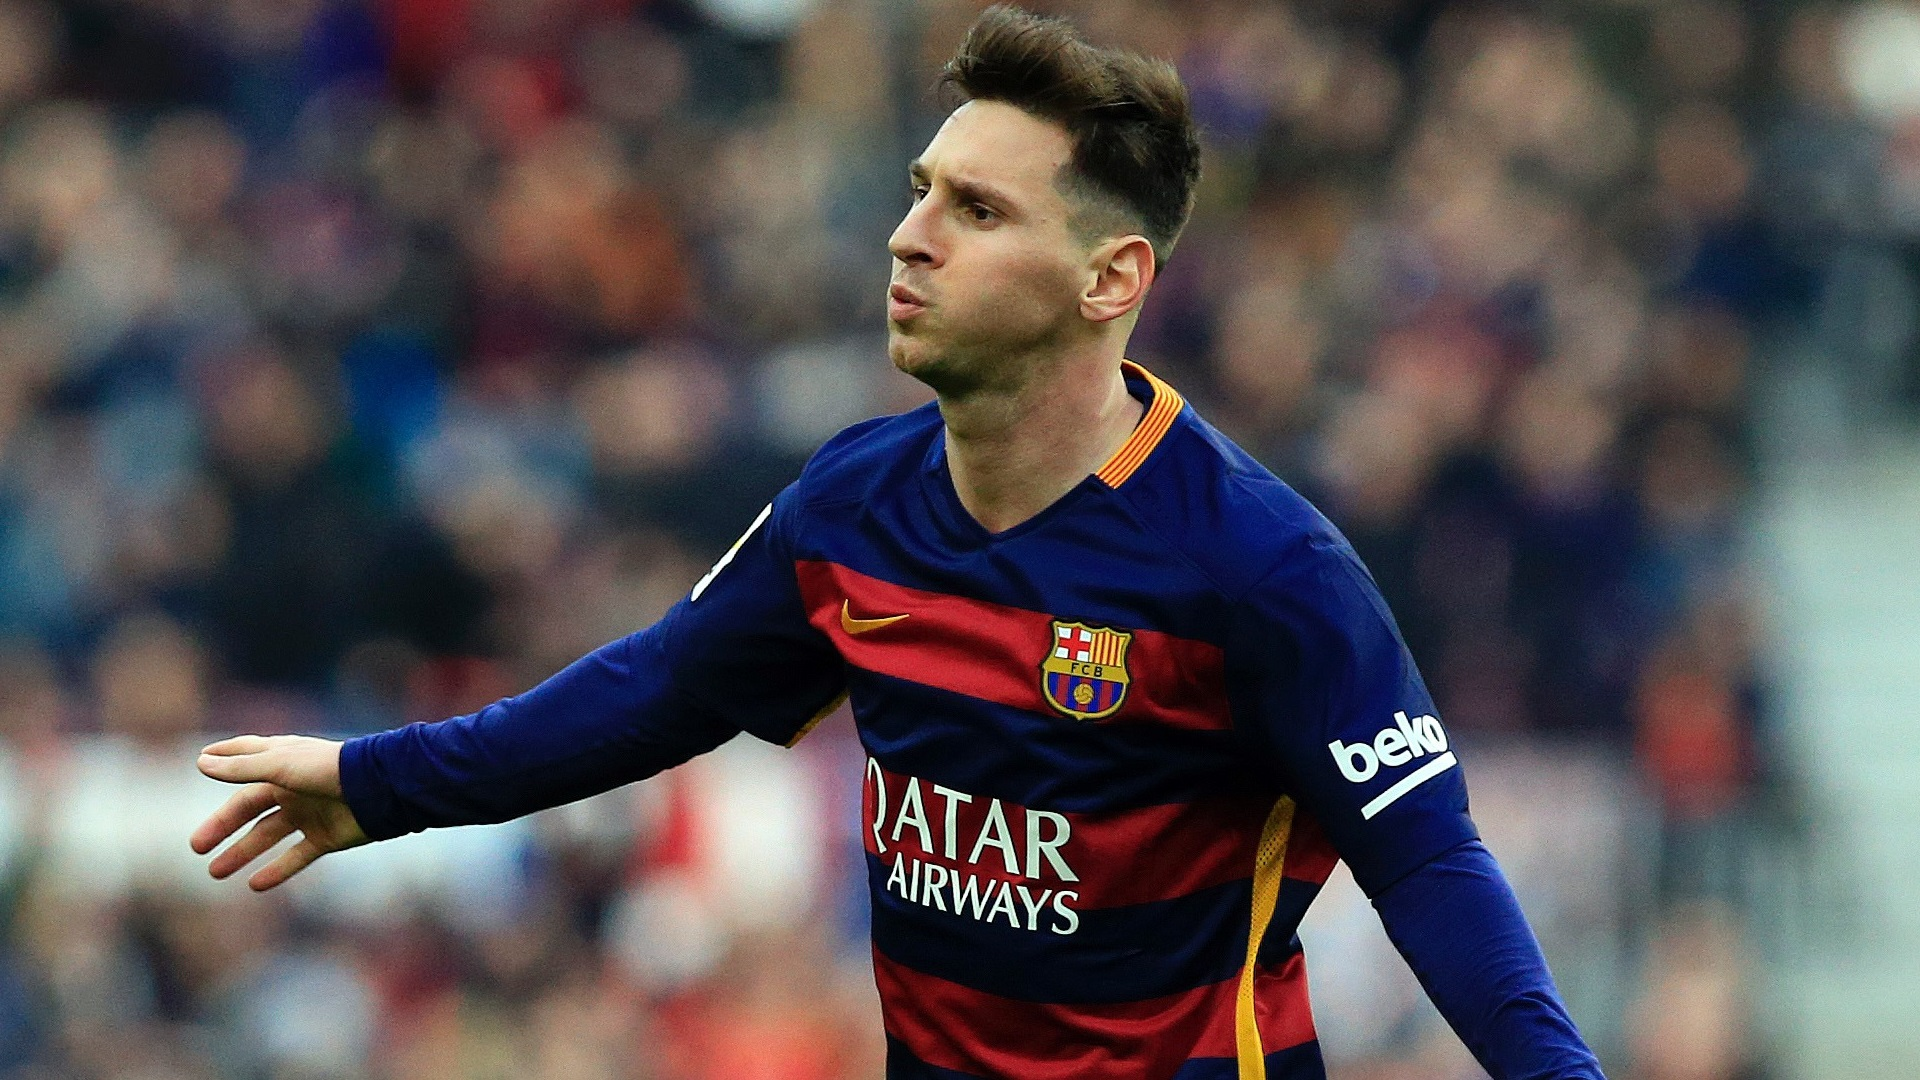 RUMOURS: Guardiola to lure Messi to Man City - Goal.com